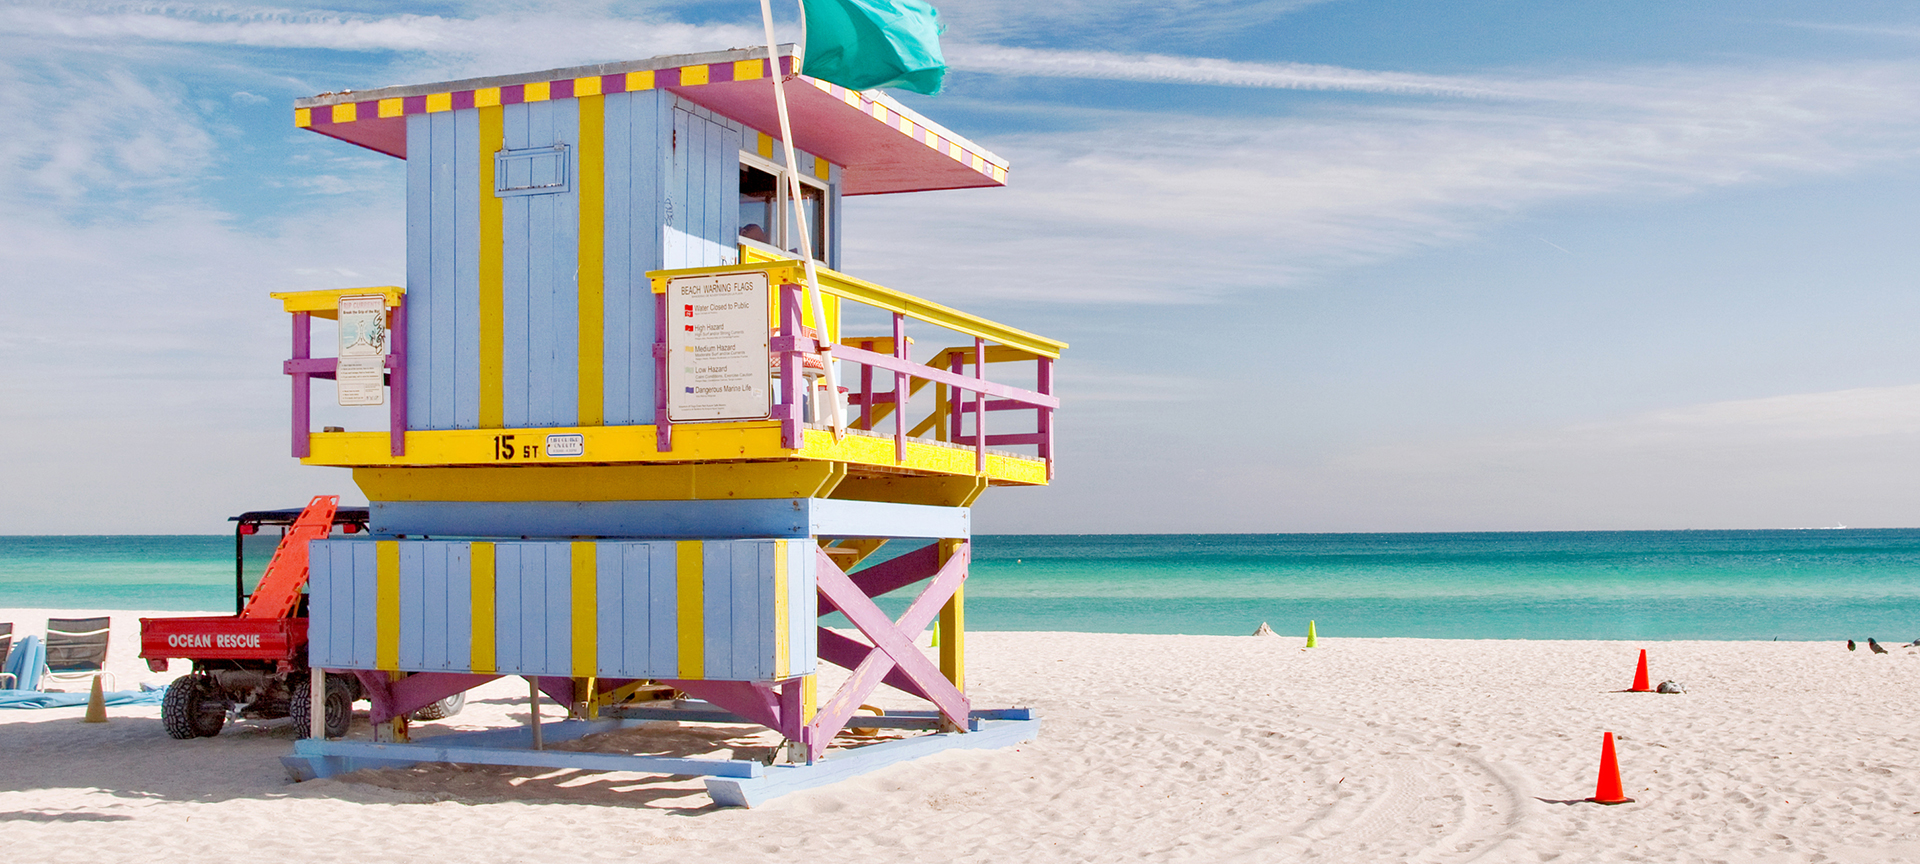 On the beaches of Miami, the Atlantic Ocean merges with the Caribbean Sea, the sands turn soft and white and the waters lap the shore in shades of light blue to nearly clear aqua.